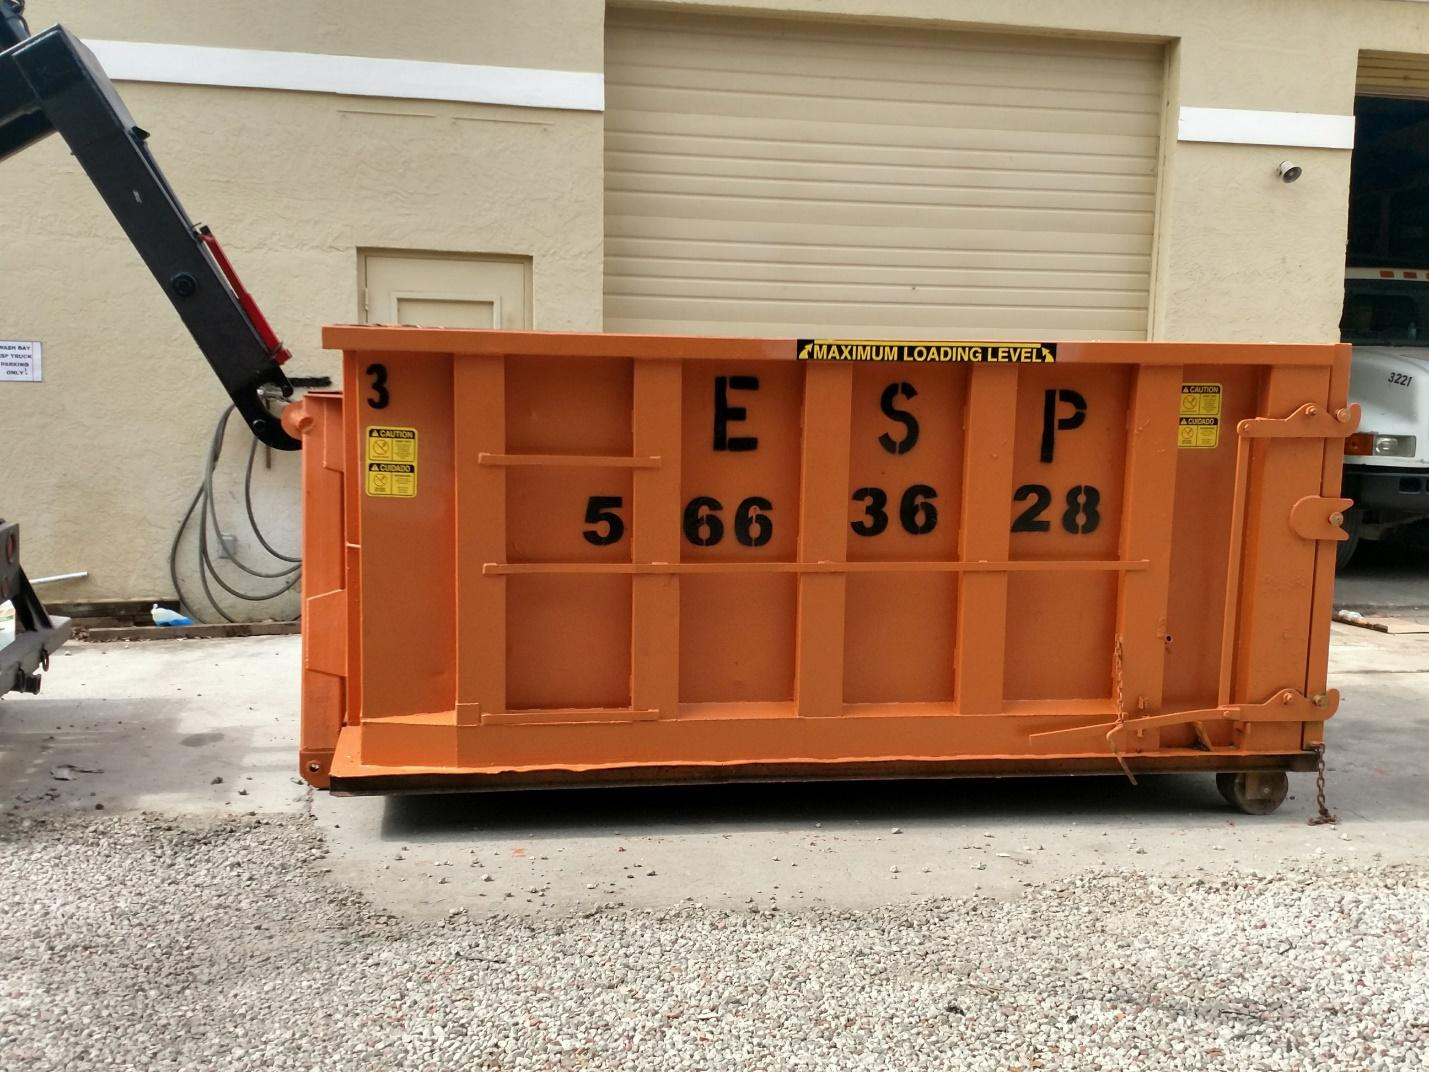 7 Things You Need to Do to Prepare for Your Dumpster Rental